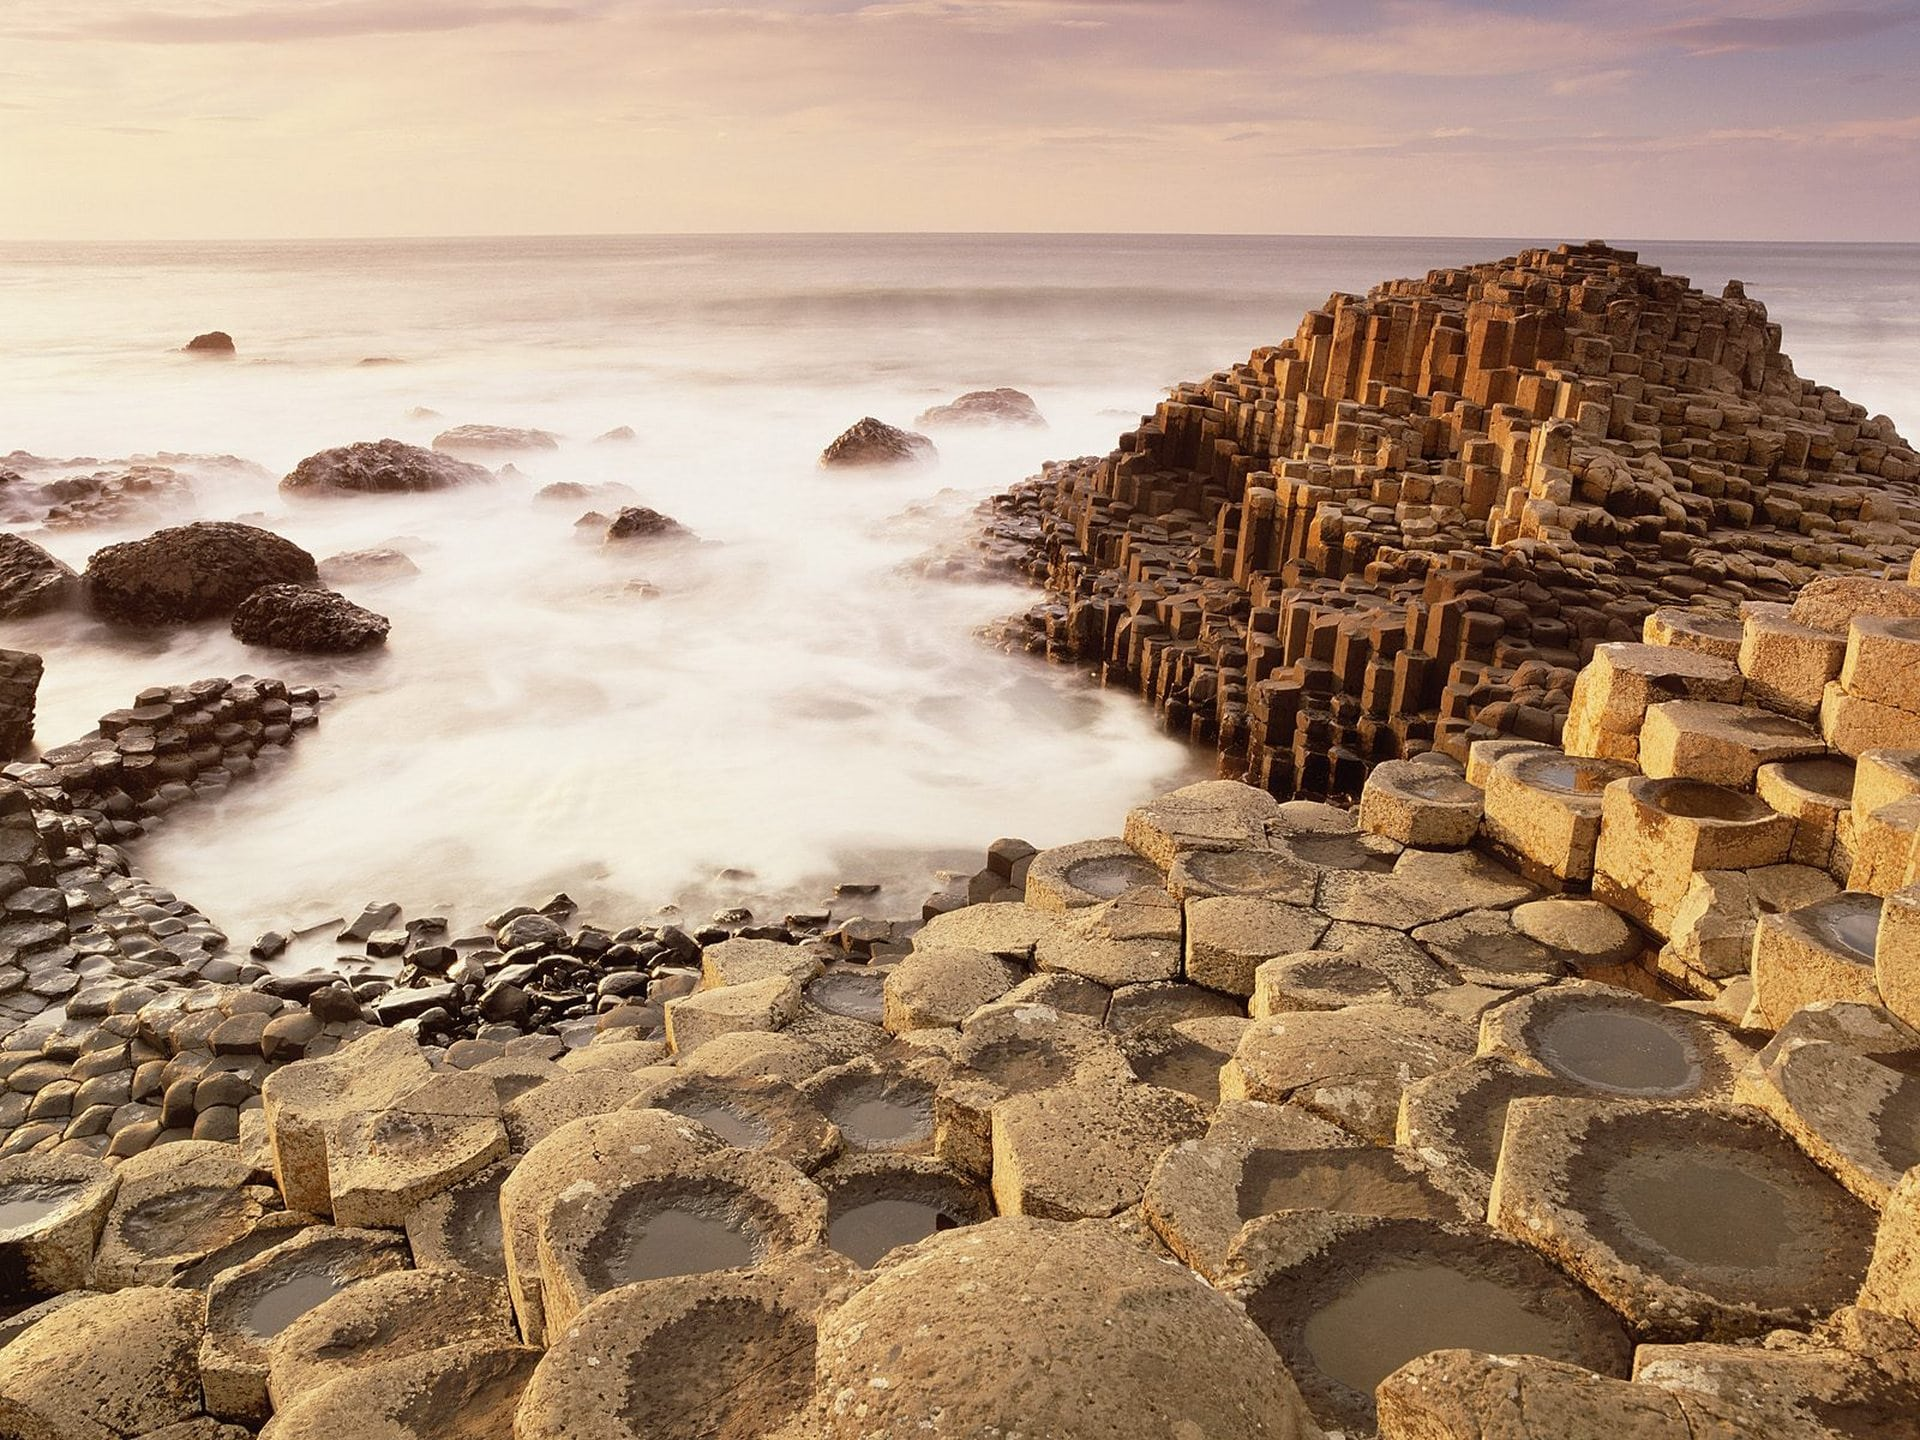 Visiting the mystical columns of Giant's Causeway is one of the best things to do in Ireland